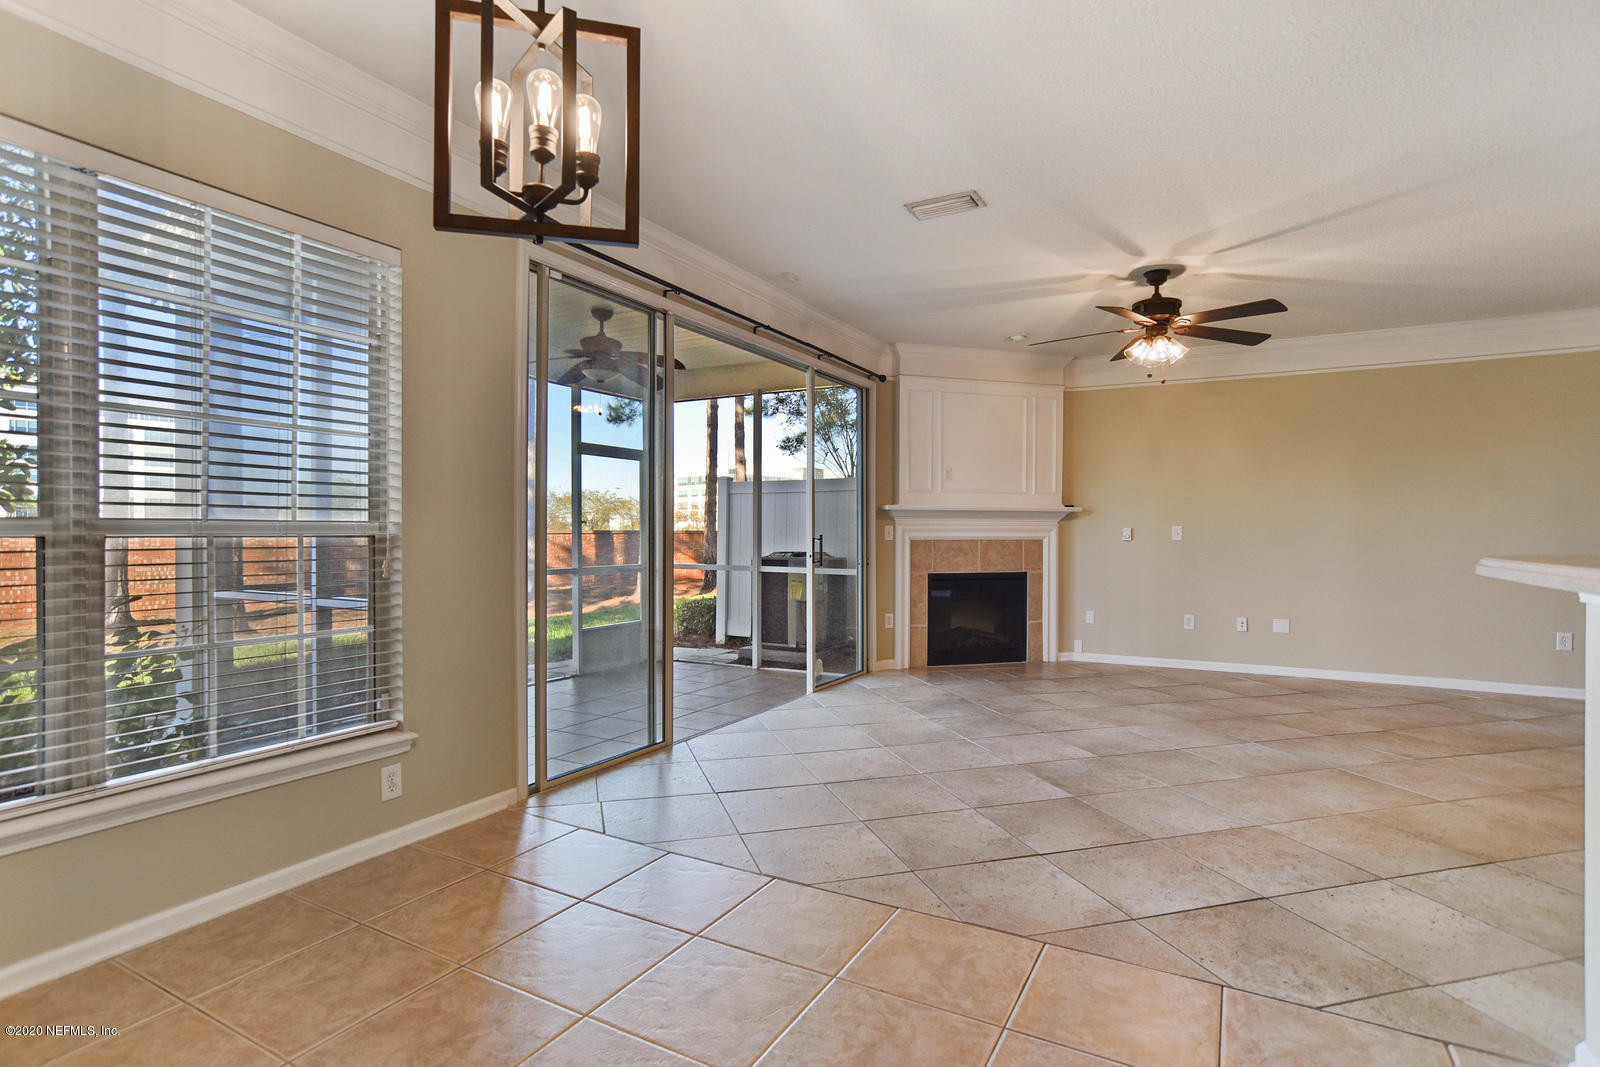 11245 CASTLEMAIN, JACKSONVILLE, FLORIDA 32256, 3 Bedrooms Bedrooms, ,2 BathroomsBathrooms,Residential,For sale,CASTLEMAIN,1081324